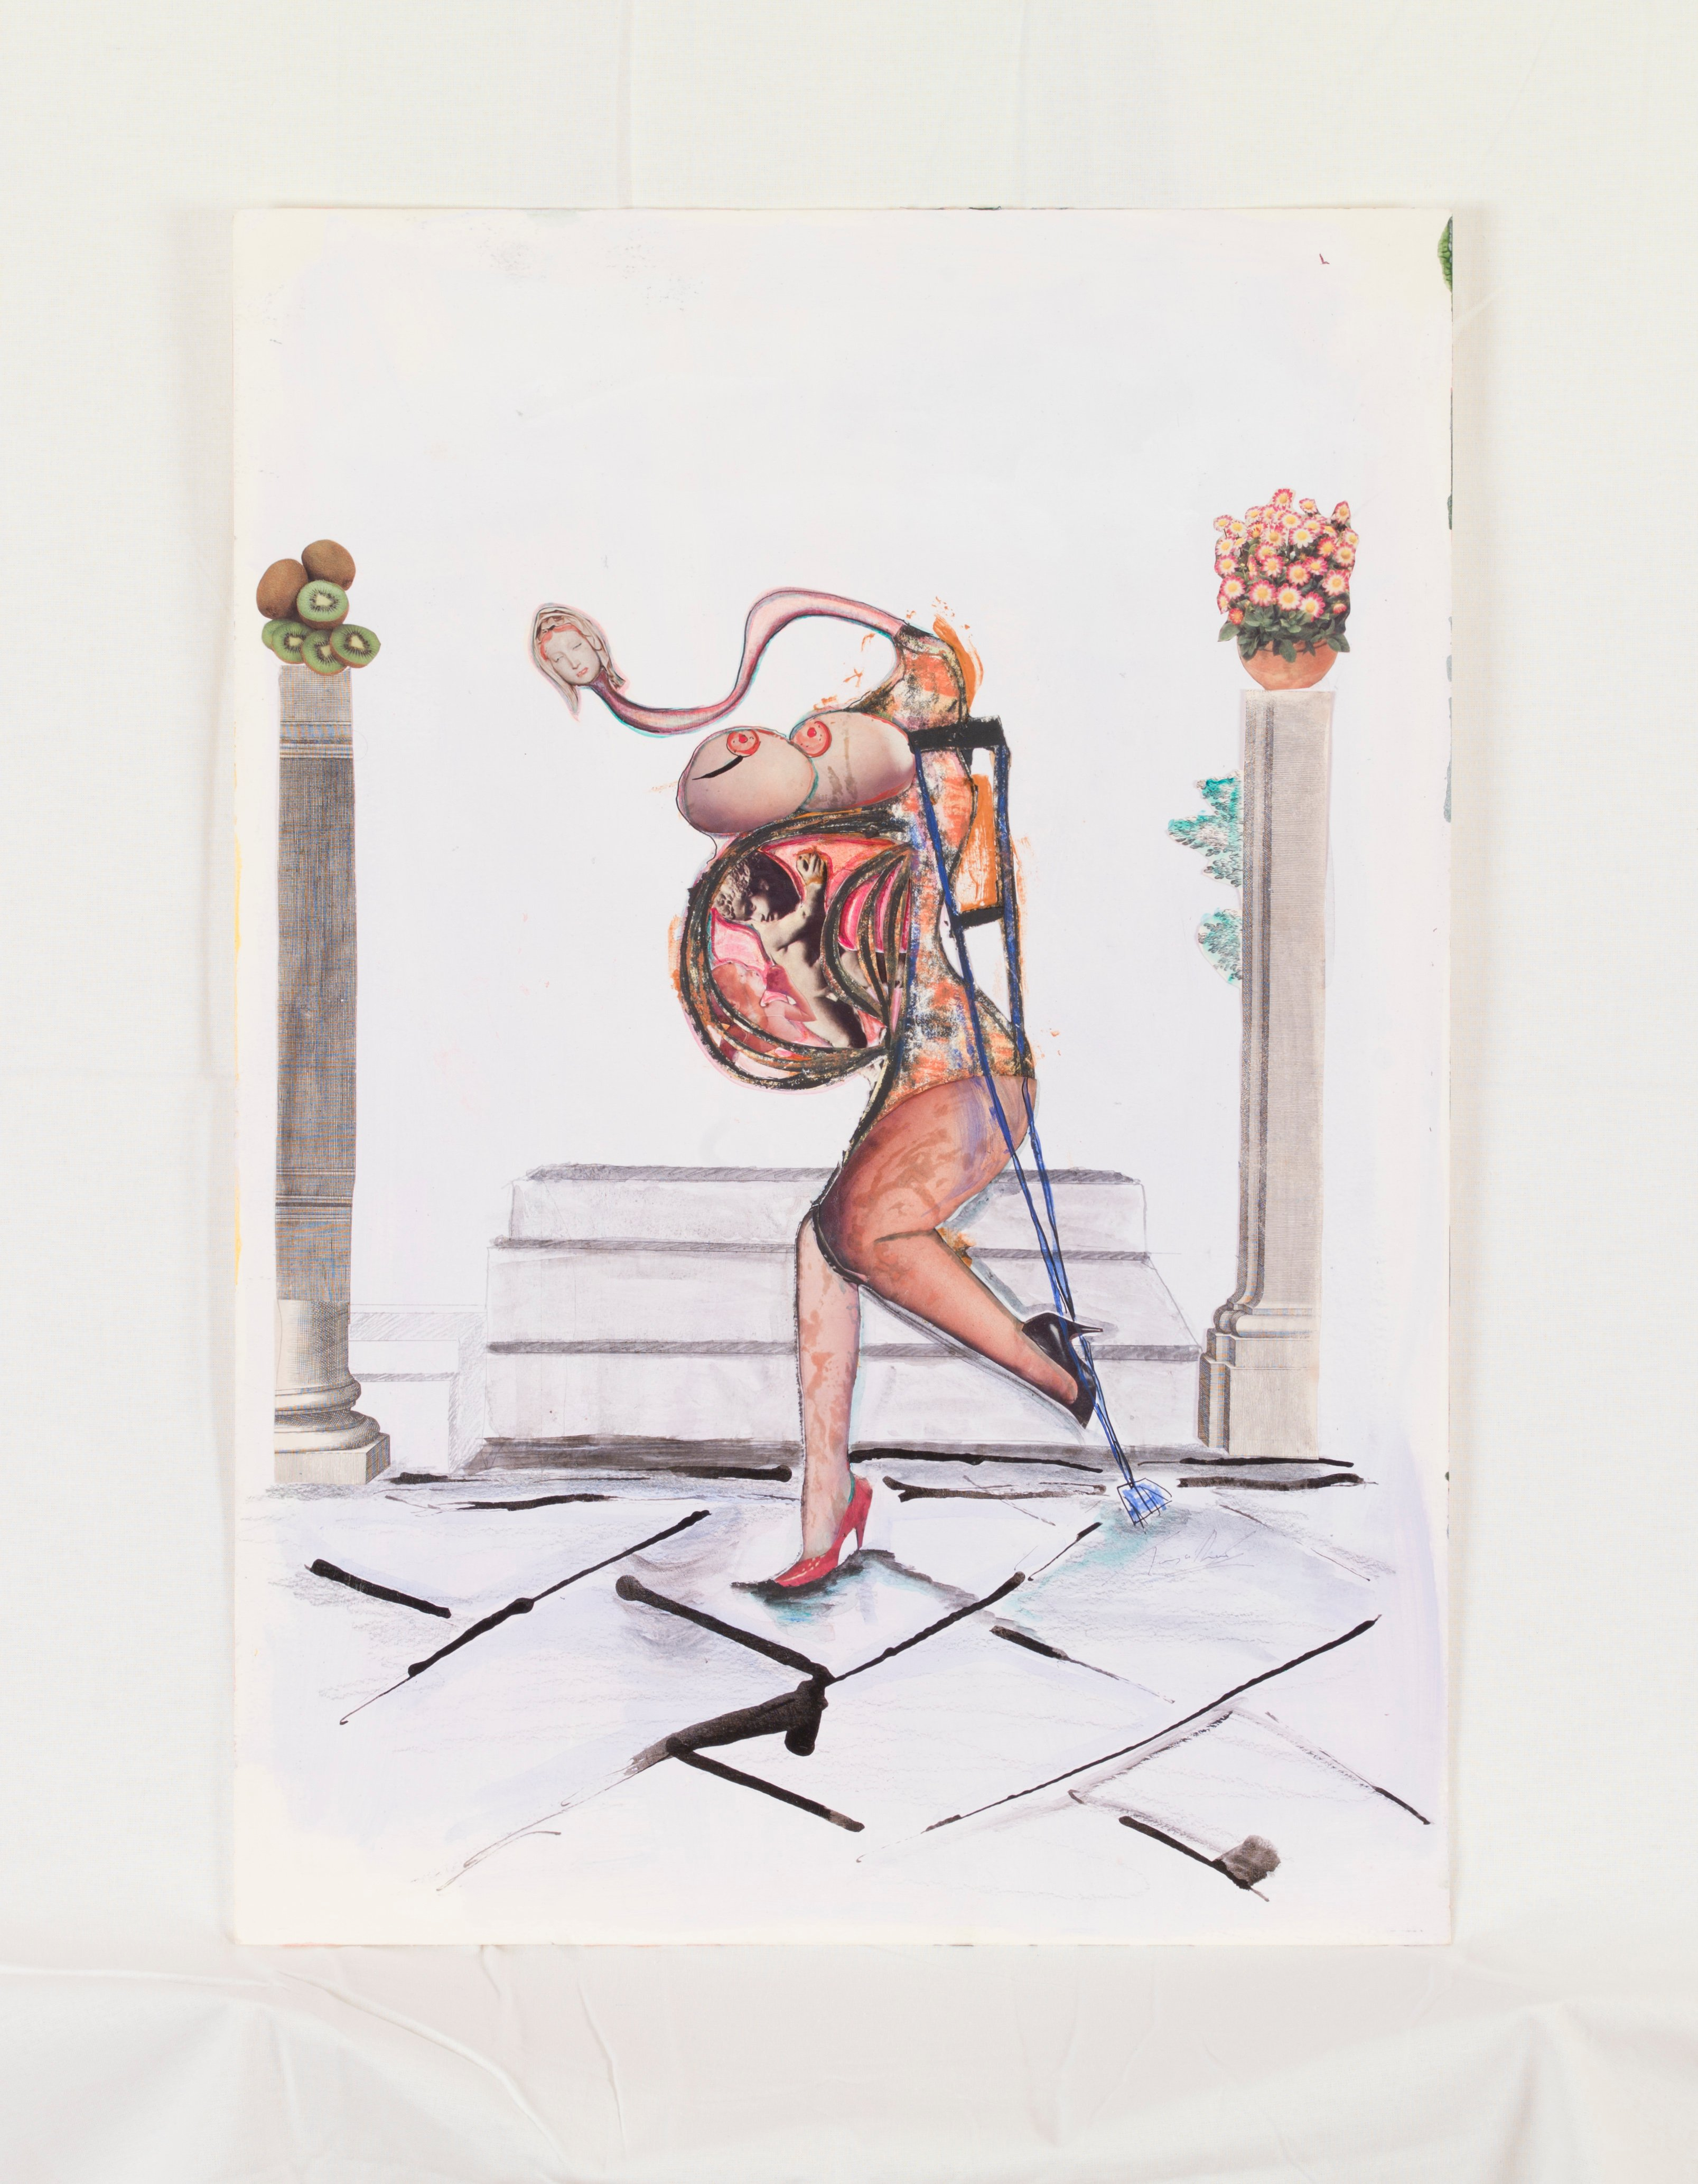 Abstract figurative line painting of a naked pregnant woman with a crutch in a tiled room between two columns.